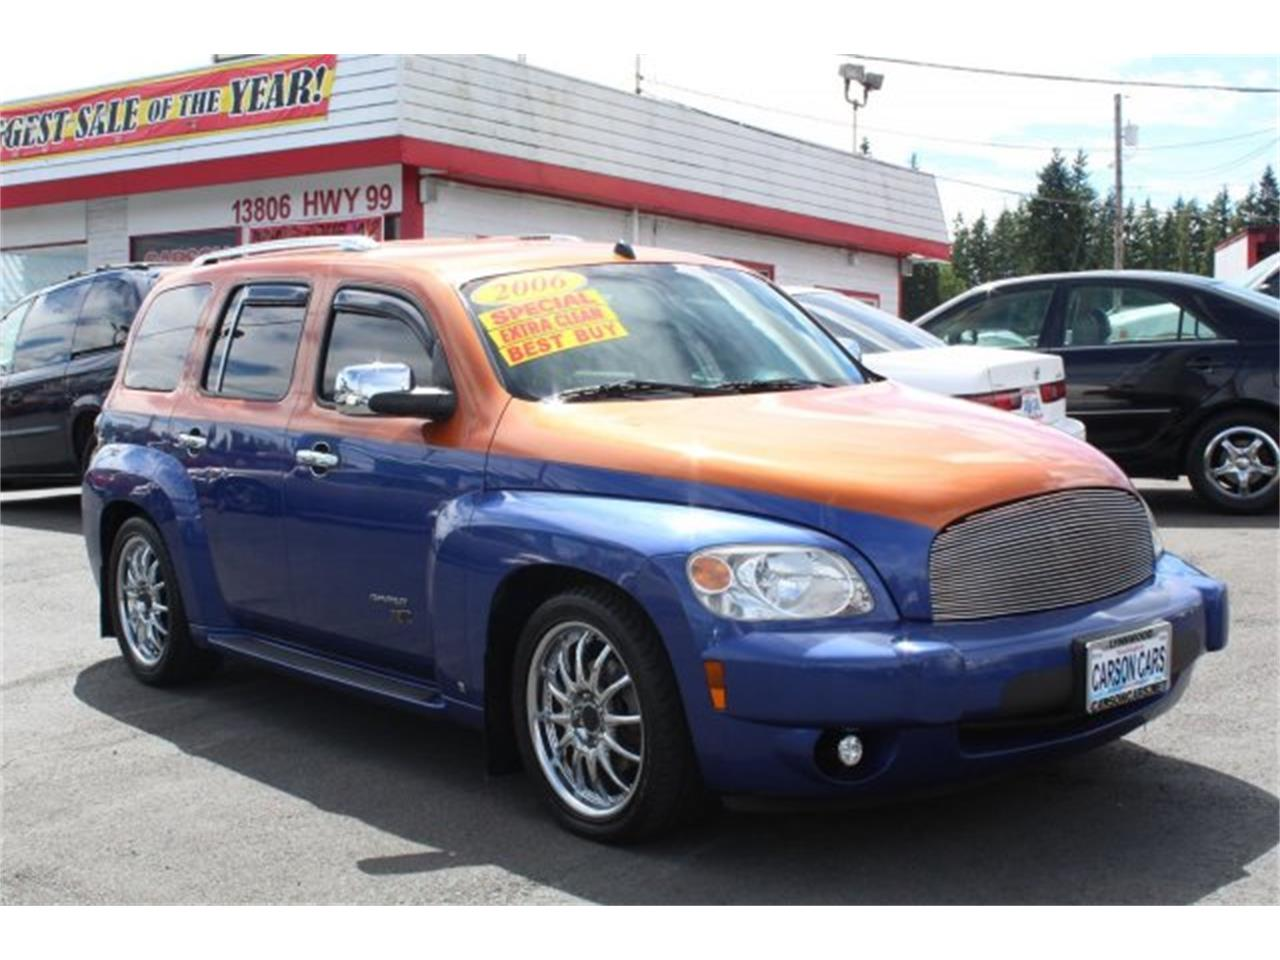 Large Picture of '06 Chevrolet HHR - $6,995.00 Offered by Carson Cars - L42N